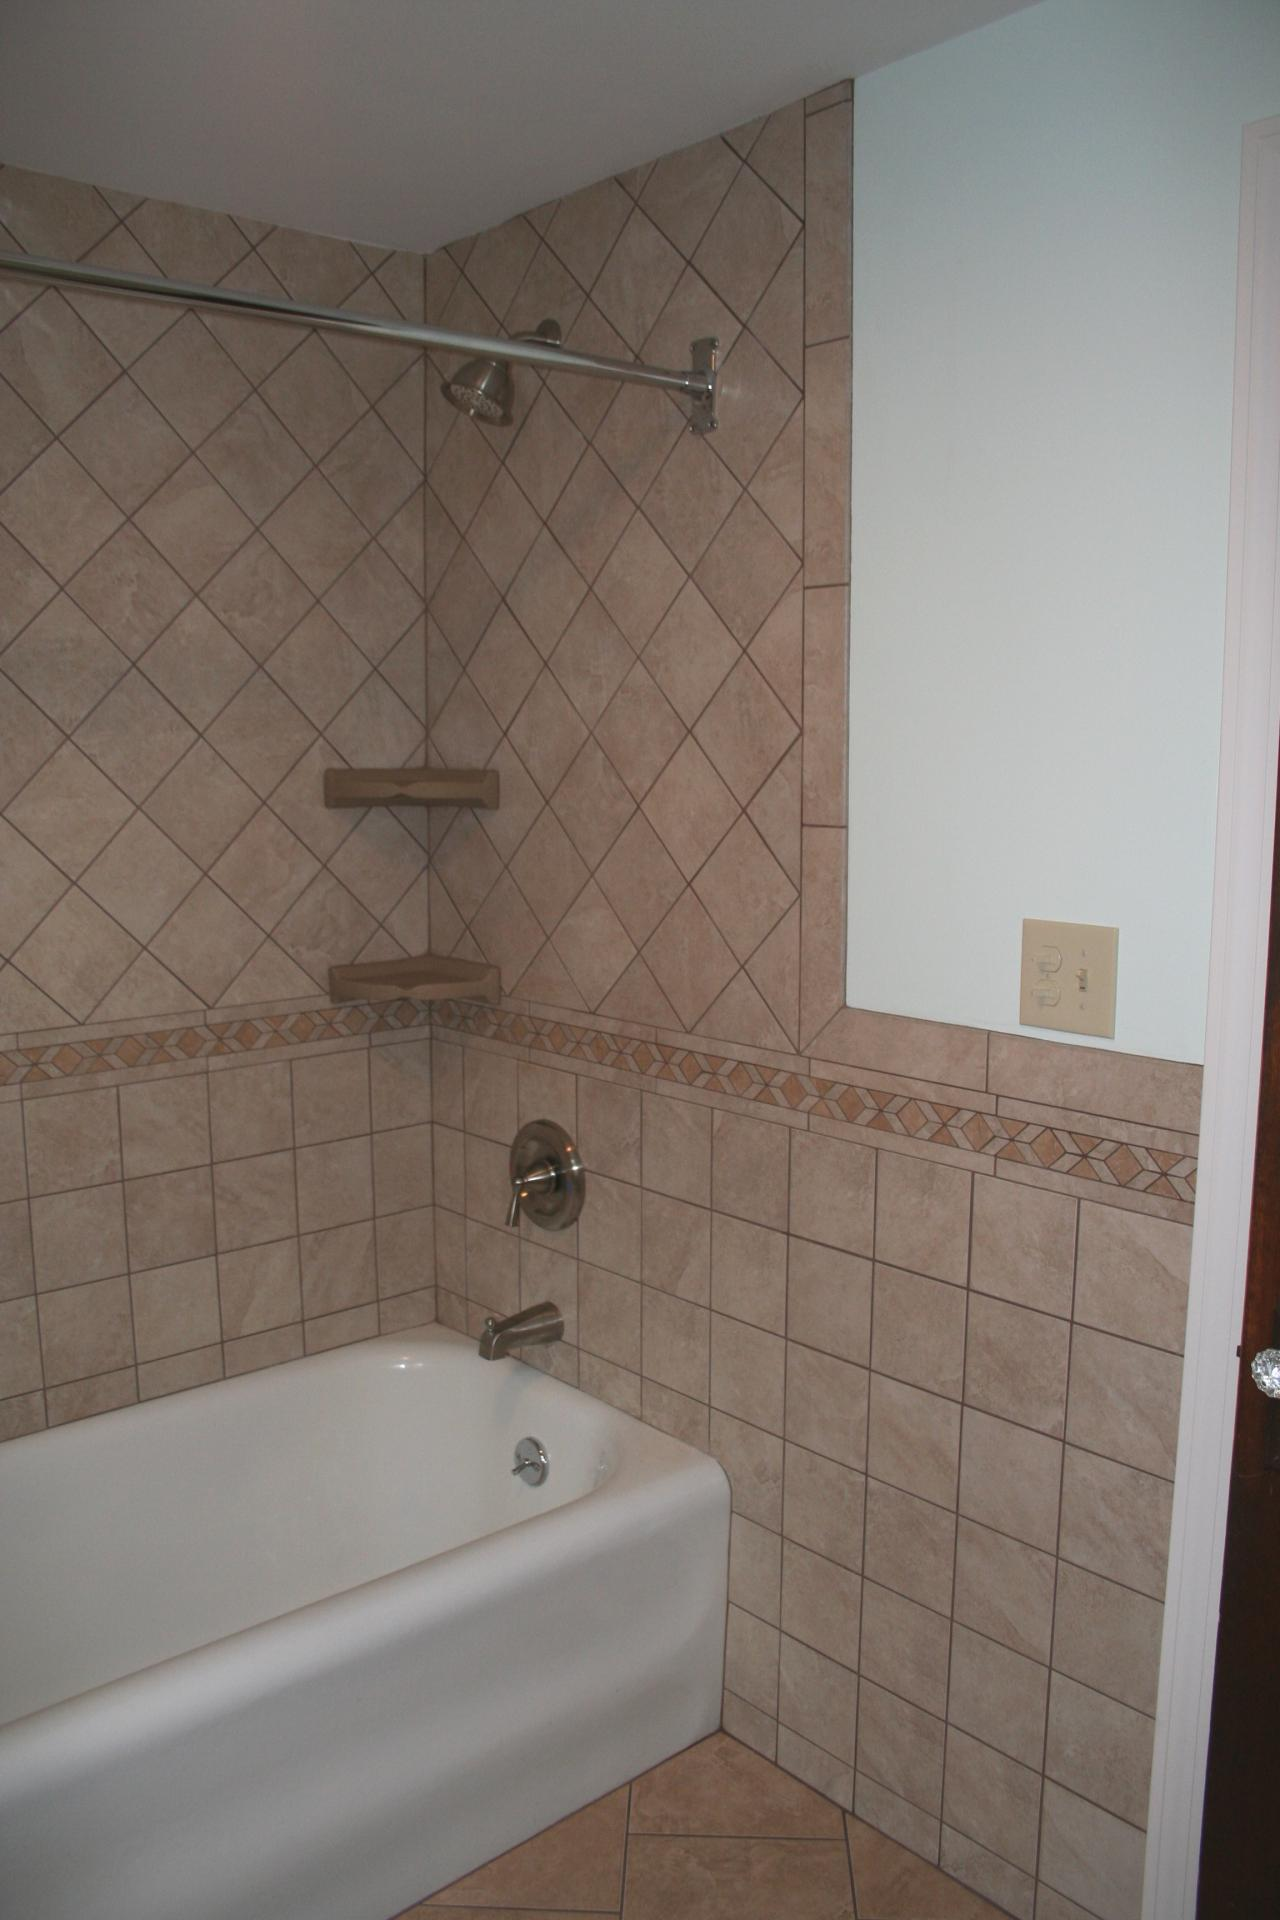 tile shower wall 6x6 wall tile with 4x12 border